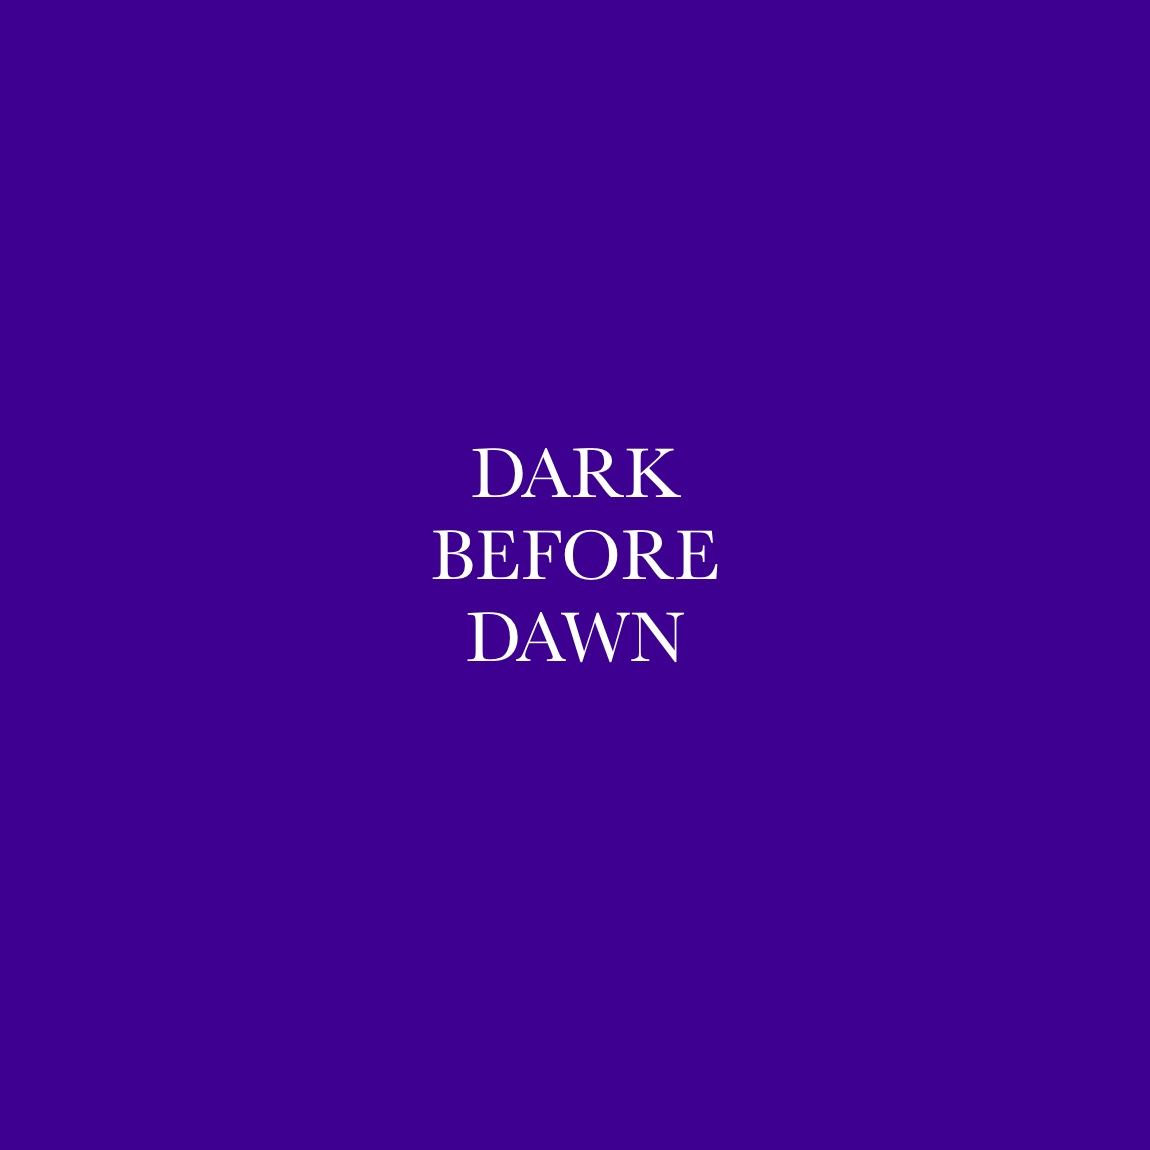 768 USD | DARK BEFORE DAWN ⟶